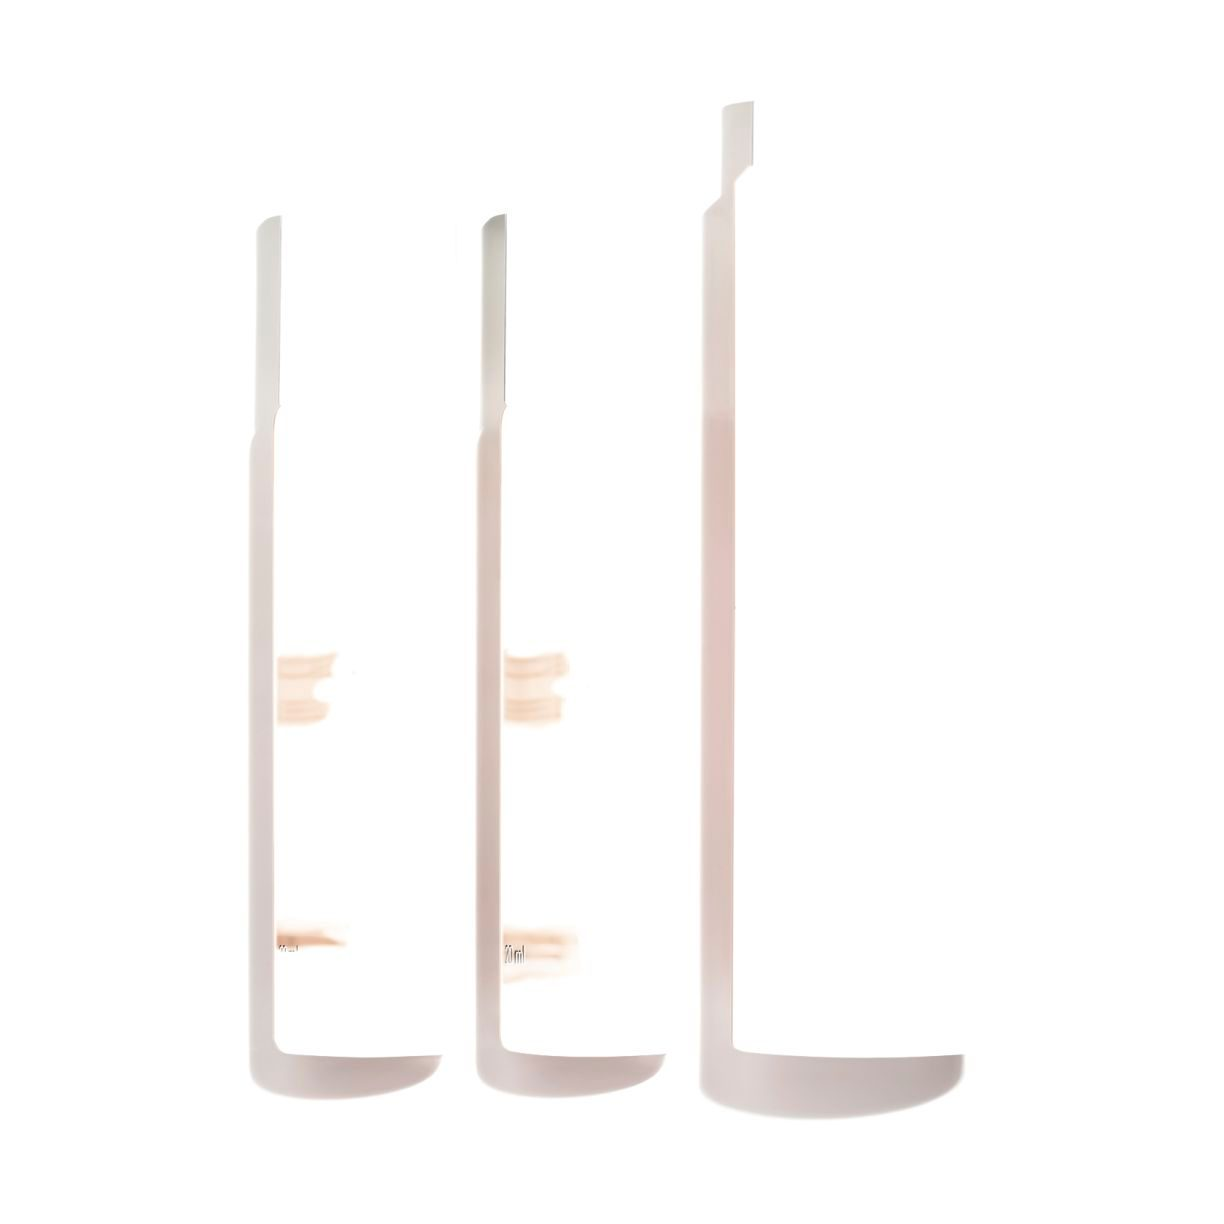 CHANCE EAU VIVE Eau de Toilette Twist and Spray 3 x 20ml